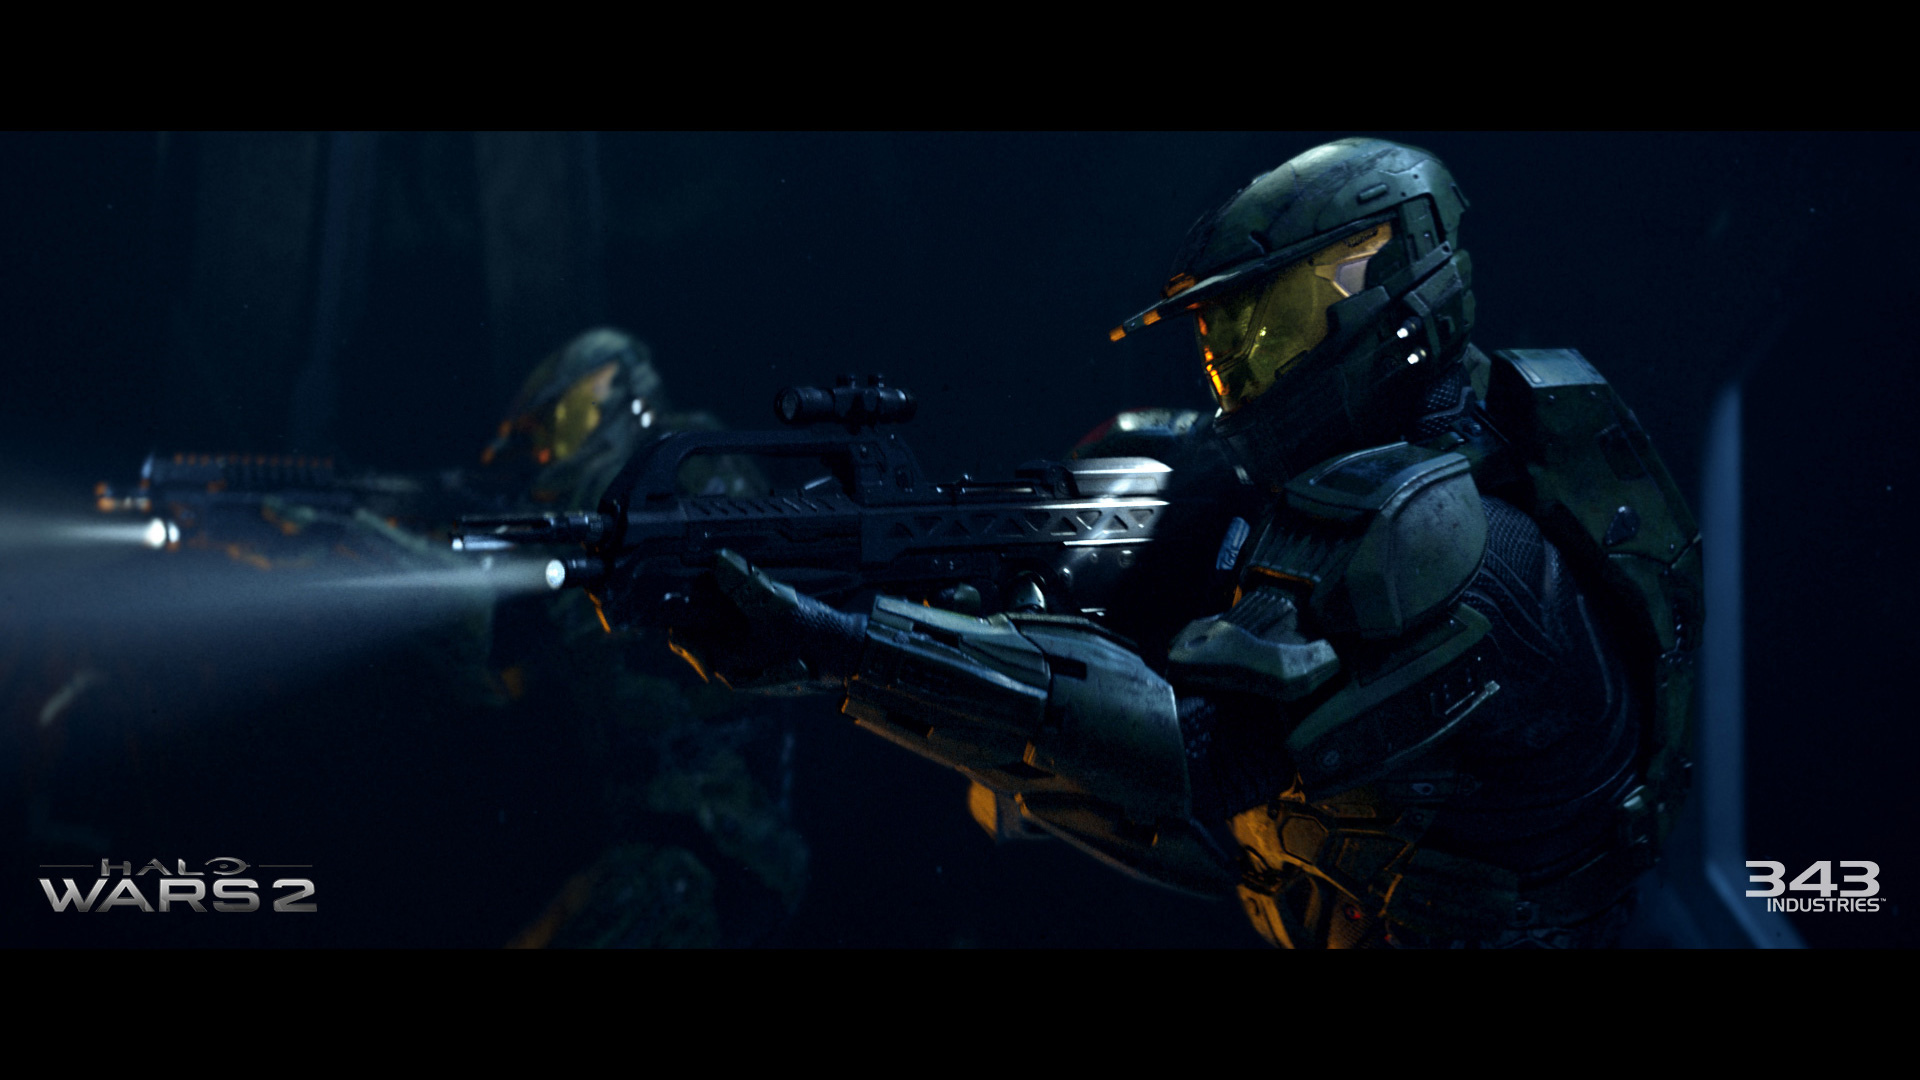 halo wars 2 games halo official site